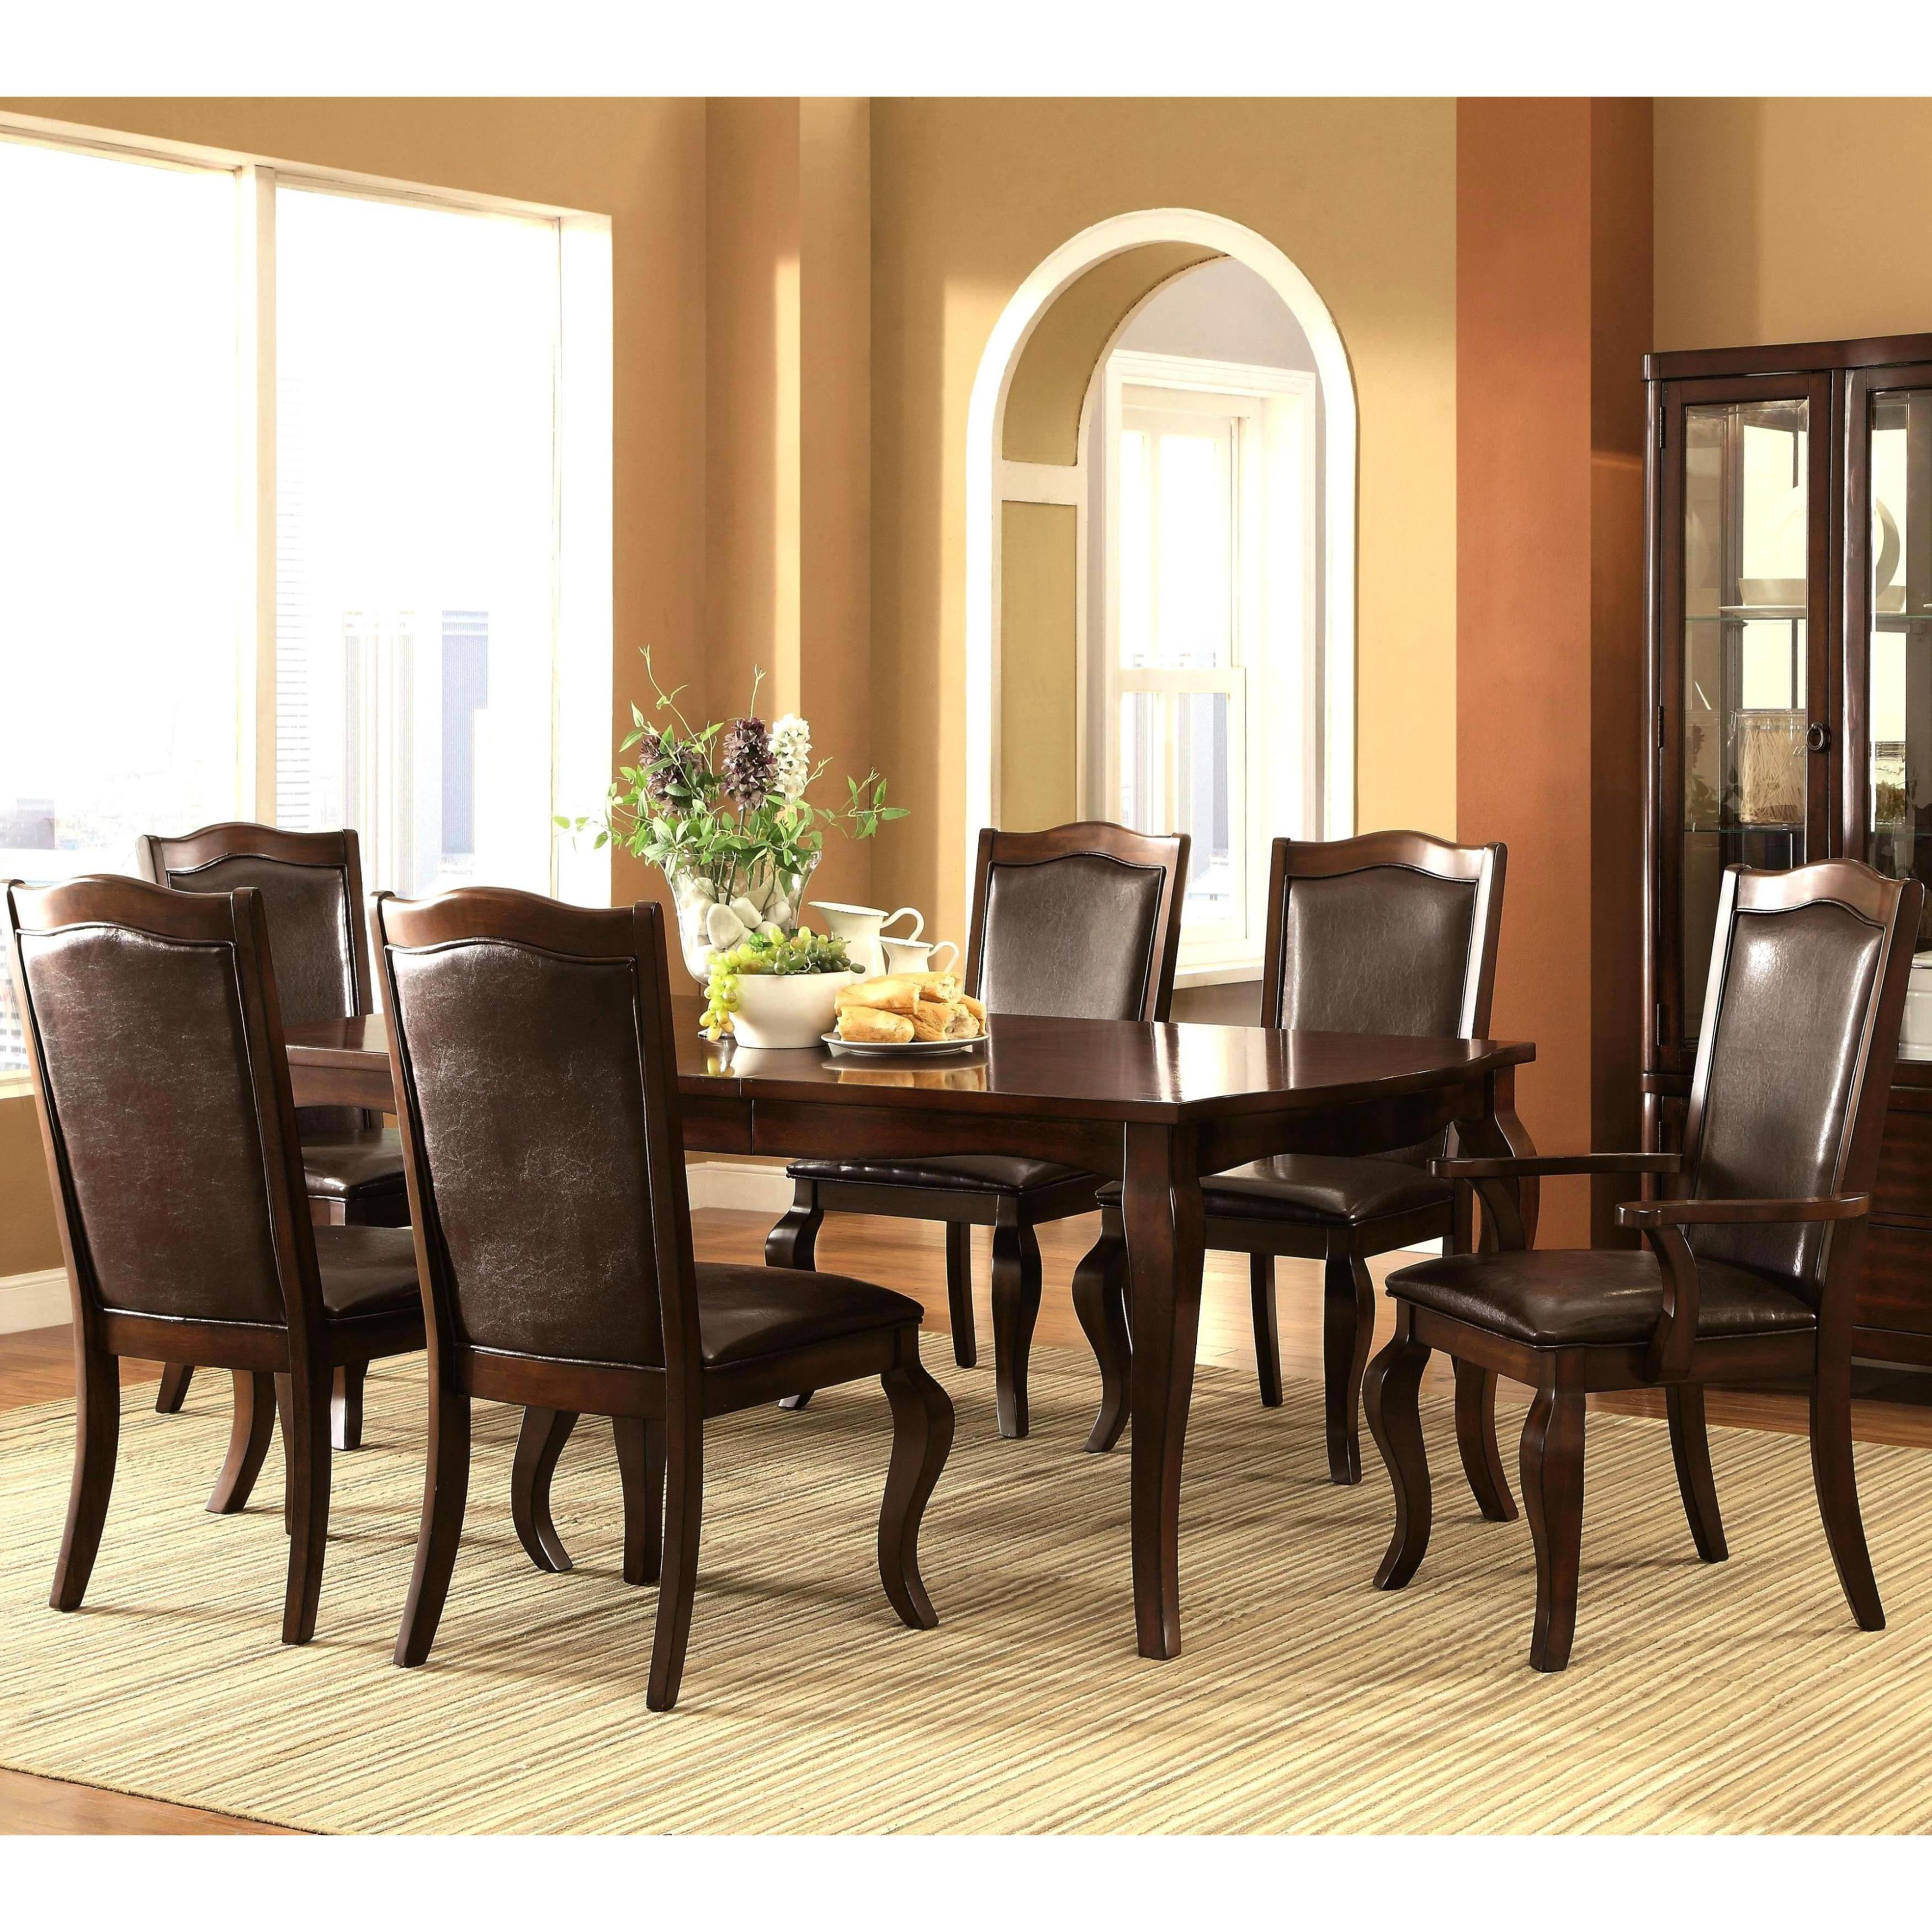 Obernau Rich Classic Crown Design Dining Set (1 Table, 2 ...